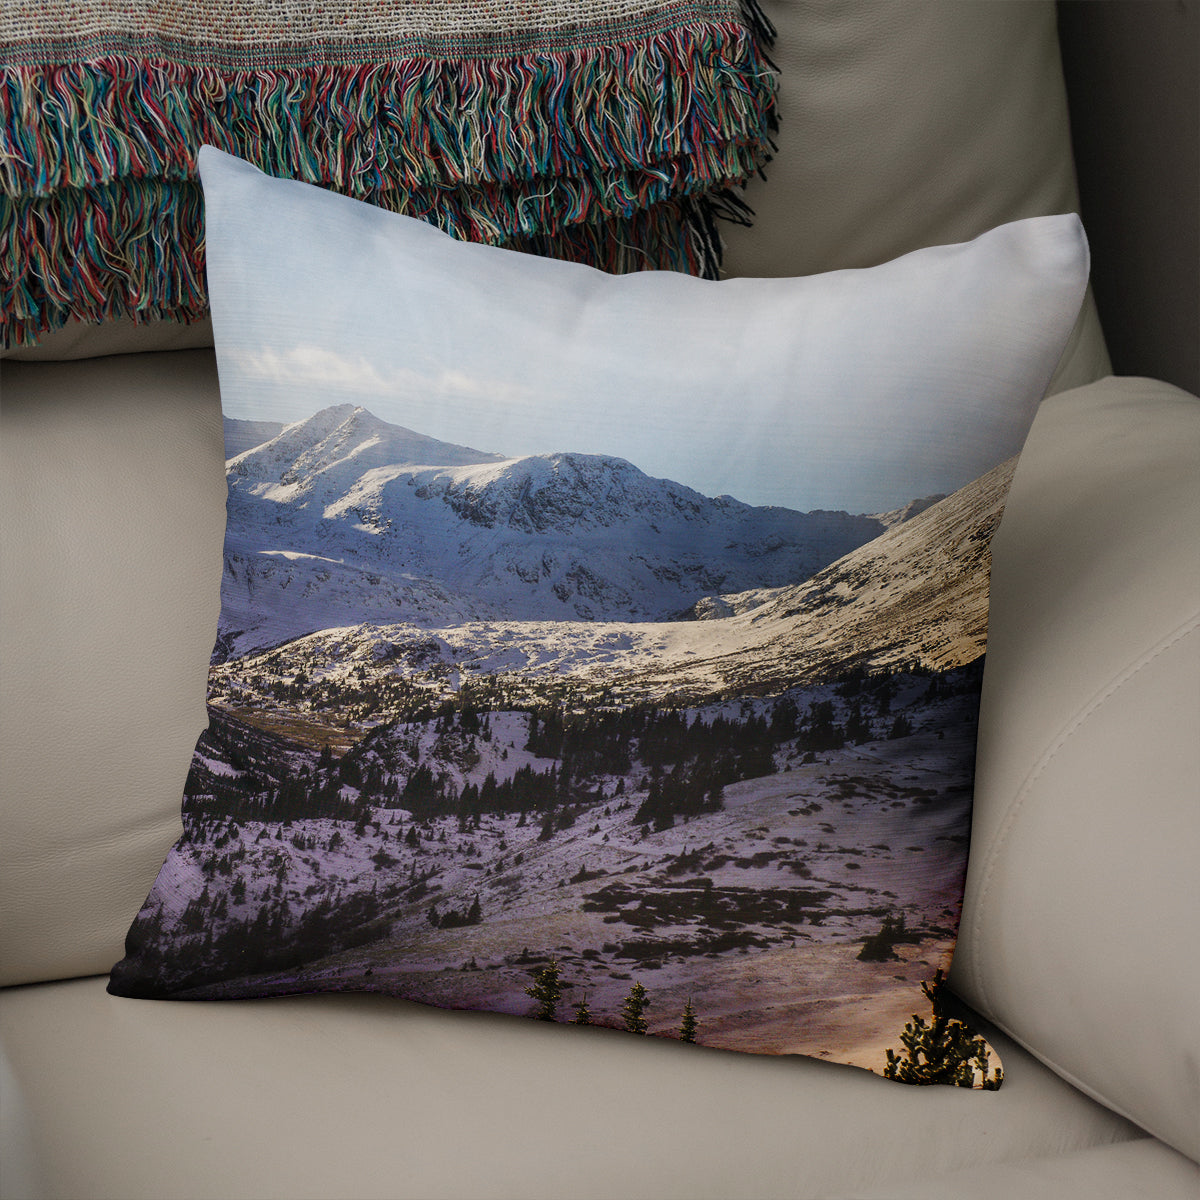 Shadow of the Mountain Decorative Throw Pillow Cover- 5 Sizes